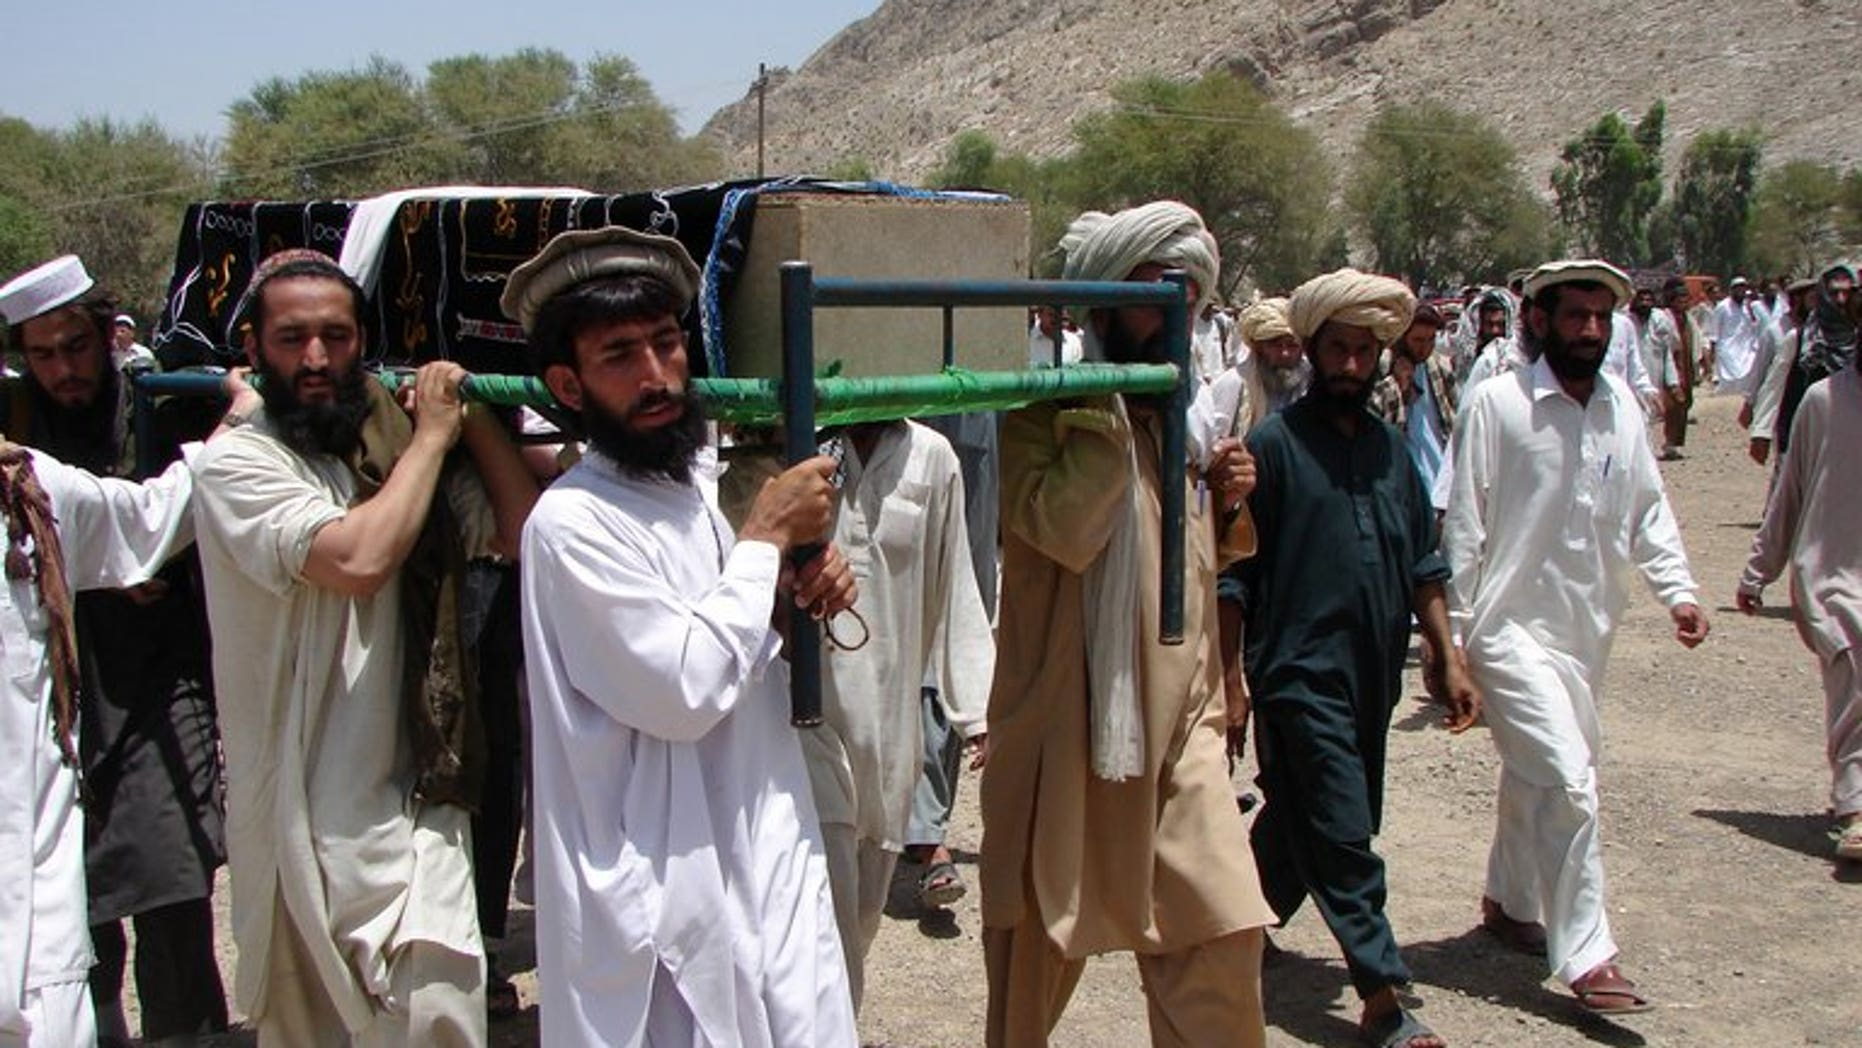 Pakistani tribesmen carry the coffin of a person allegedly killed in a US drone attack, in Miranshah, on June 16, 2011. A US drone attack struck a compound of the Al-Qaeda-linked Haqqani network in Miranshah, killing at least 17 militants.